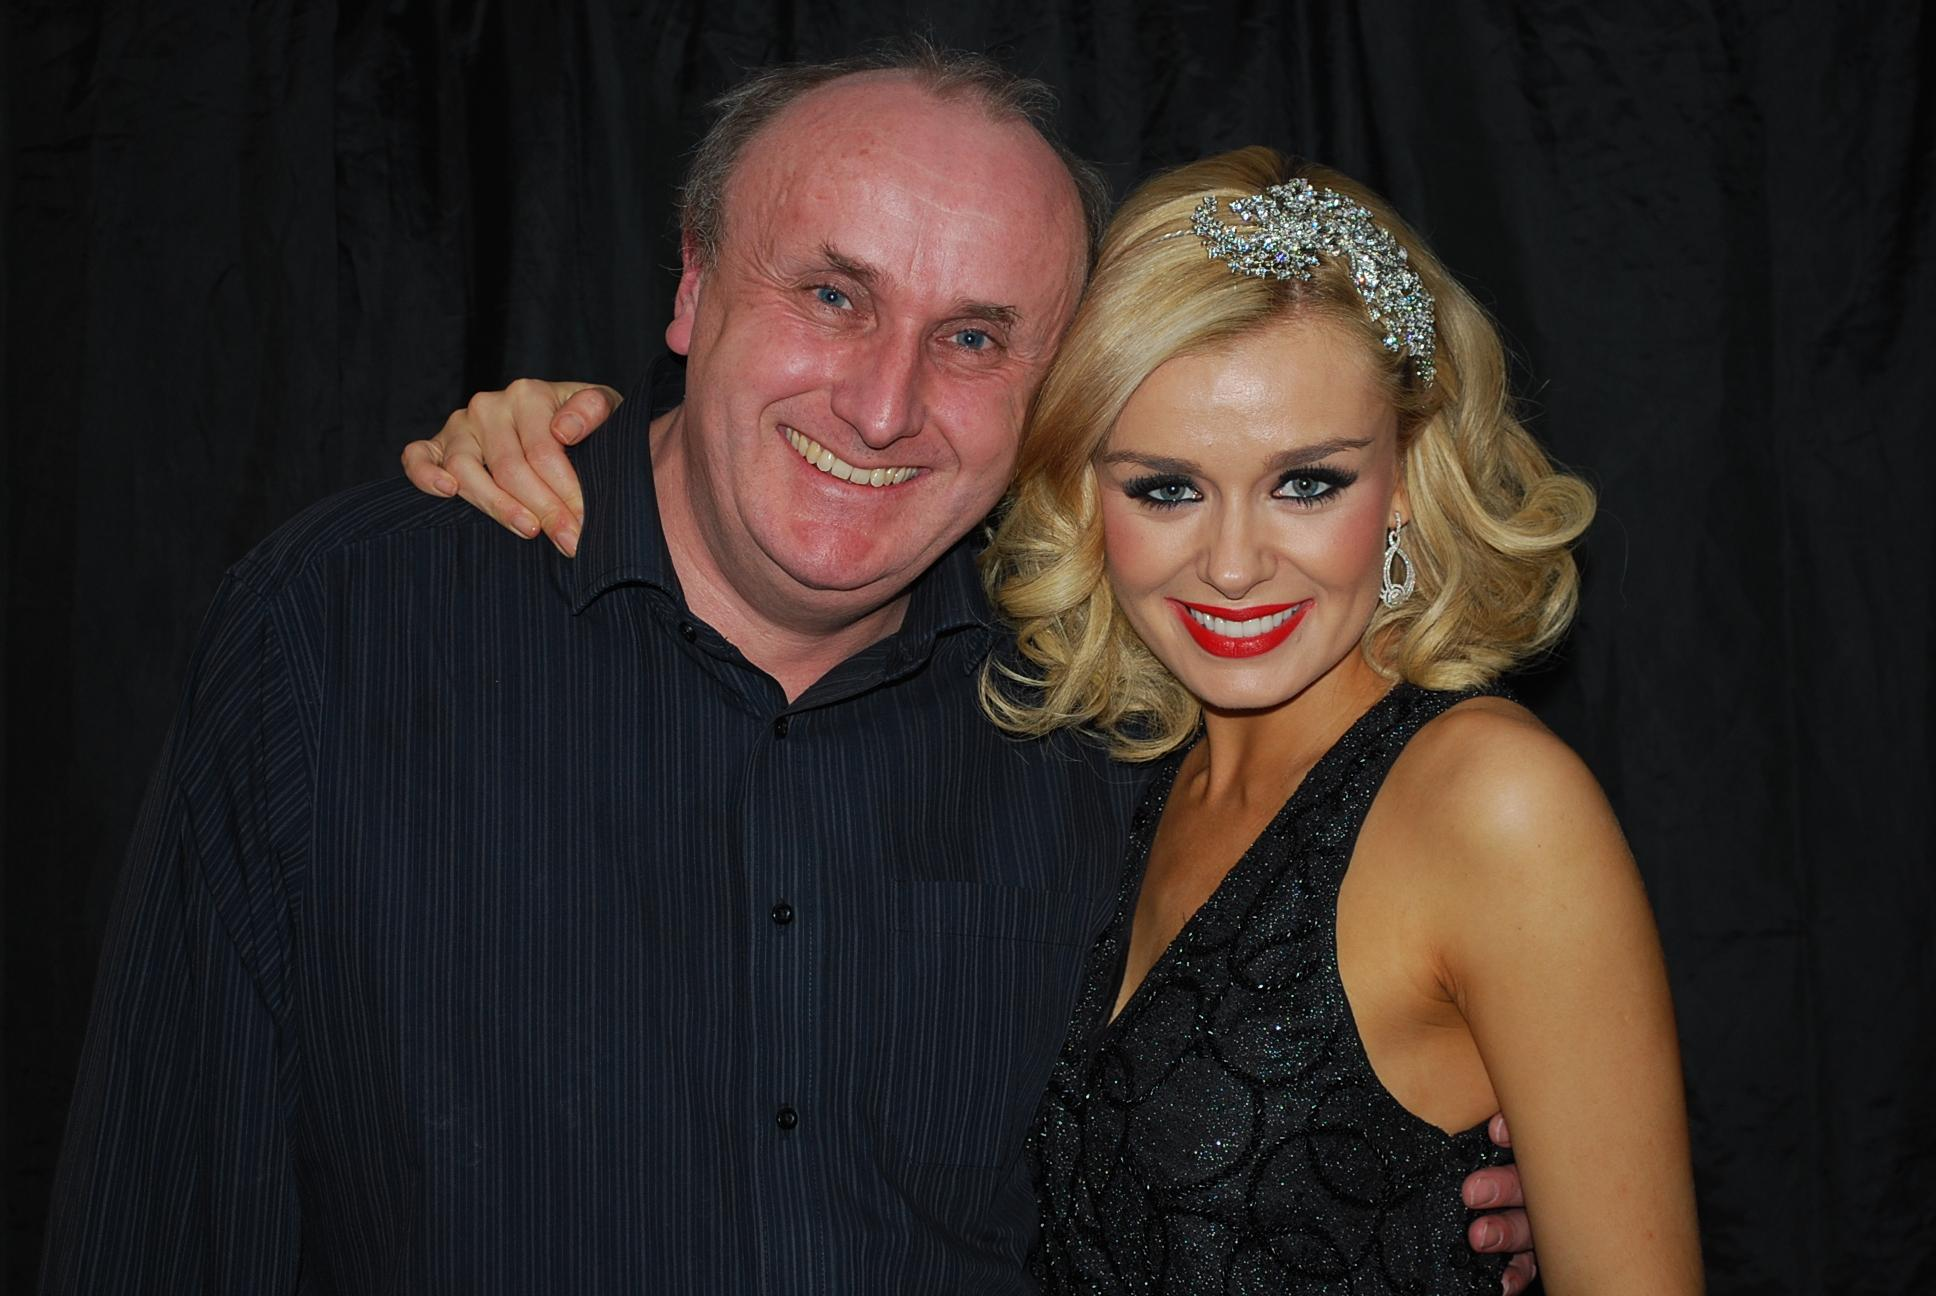 This was the 2012 tour right?! RT @ElMystico: @KathJenkins I love this! http://t.co/WRnHqusbr8